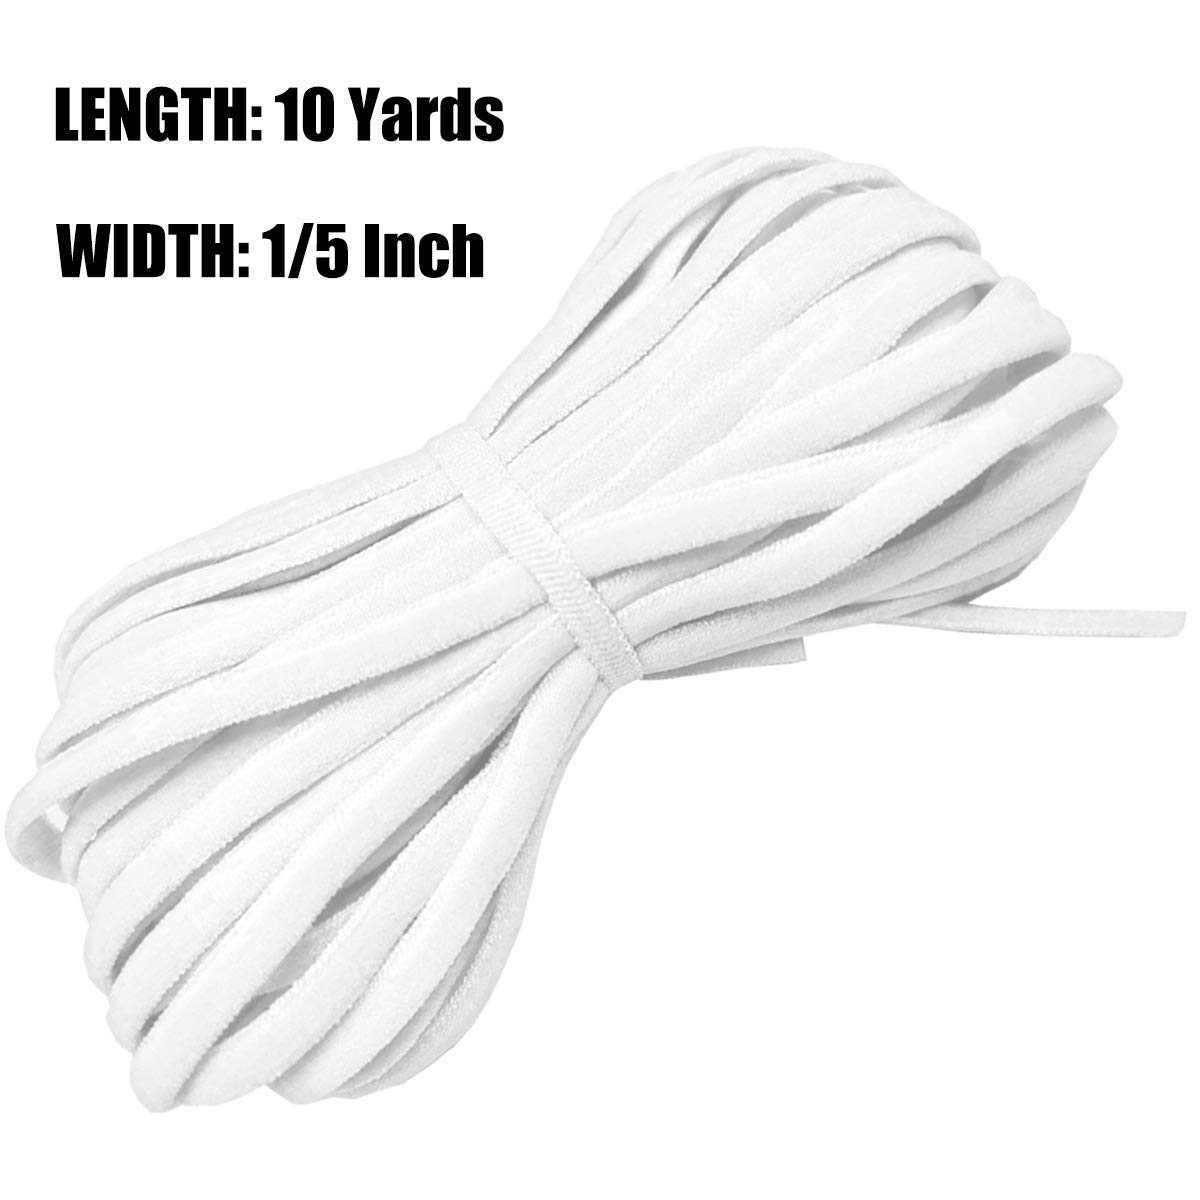 Elastic Band, Braided Stretch Strap Cord Roll for Sewing and Crafting (1/5 inch 5mm 10 Yards, White)